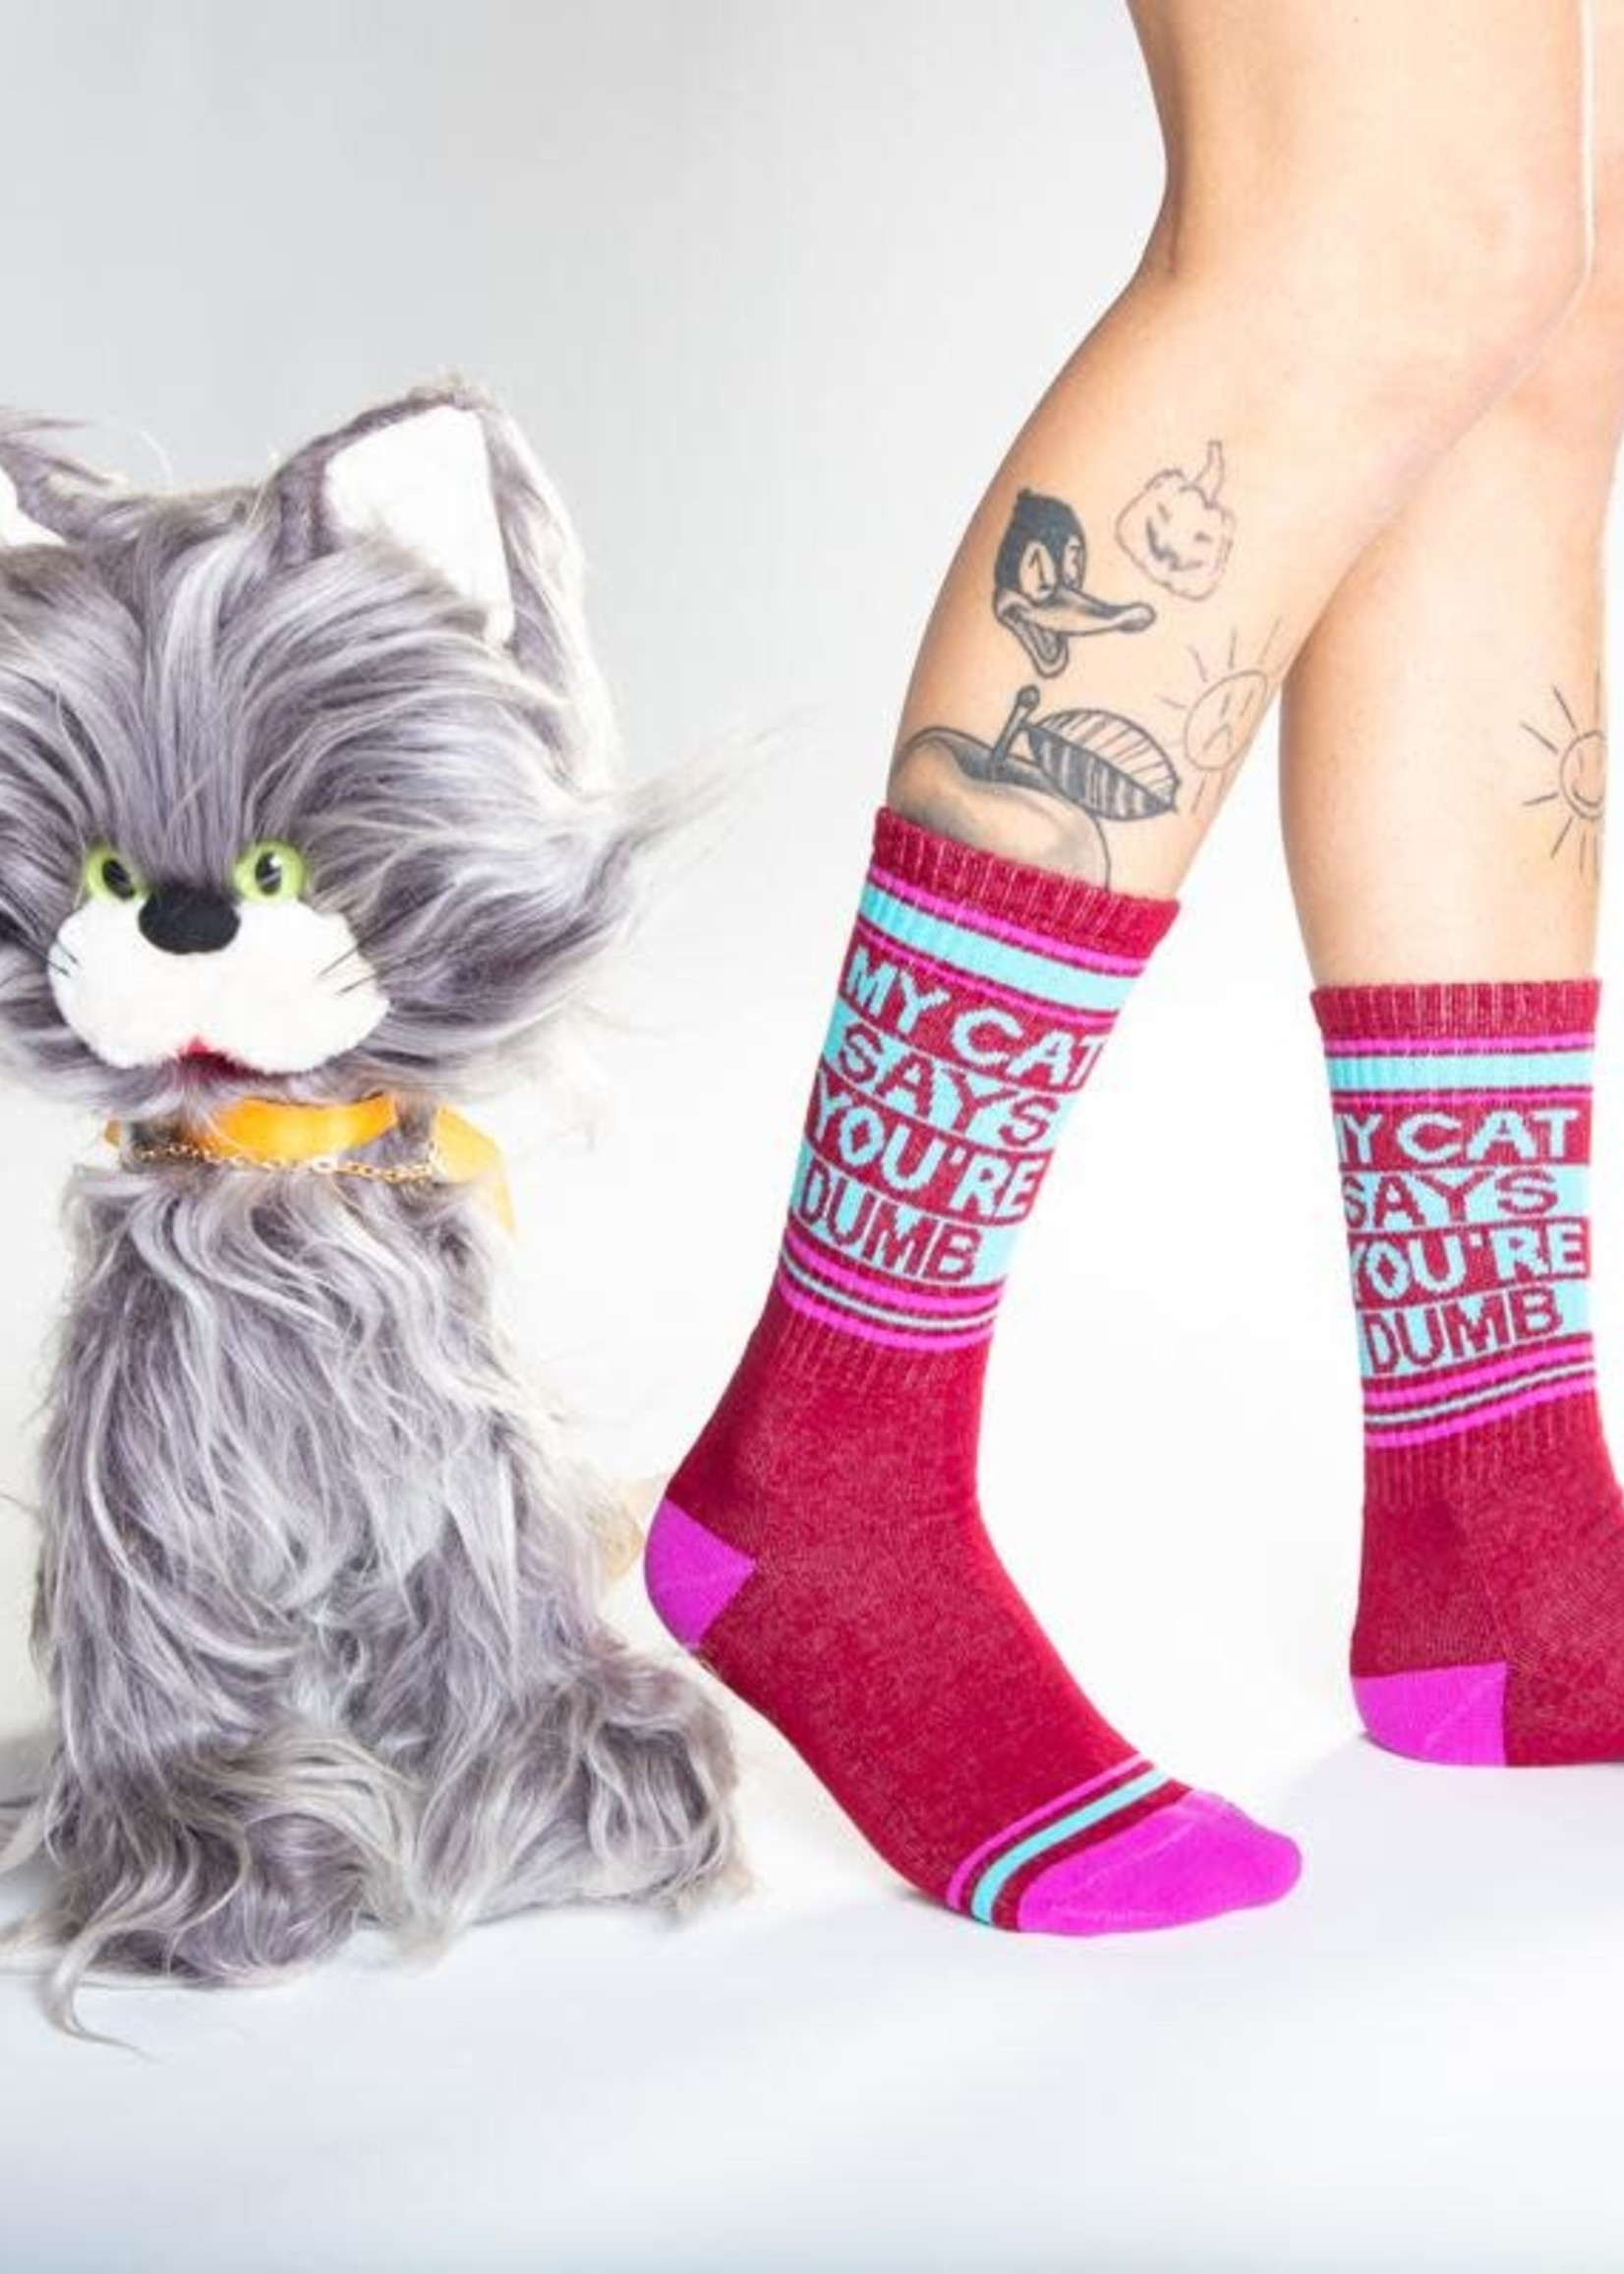 GUMBALL POODLE GUMBALL POODLE MY CAT SAYS YOU'RE DUMB SOCKS